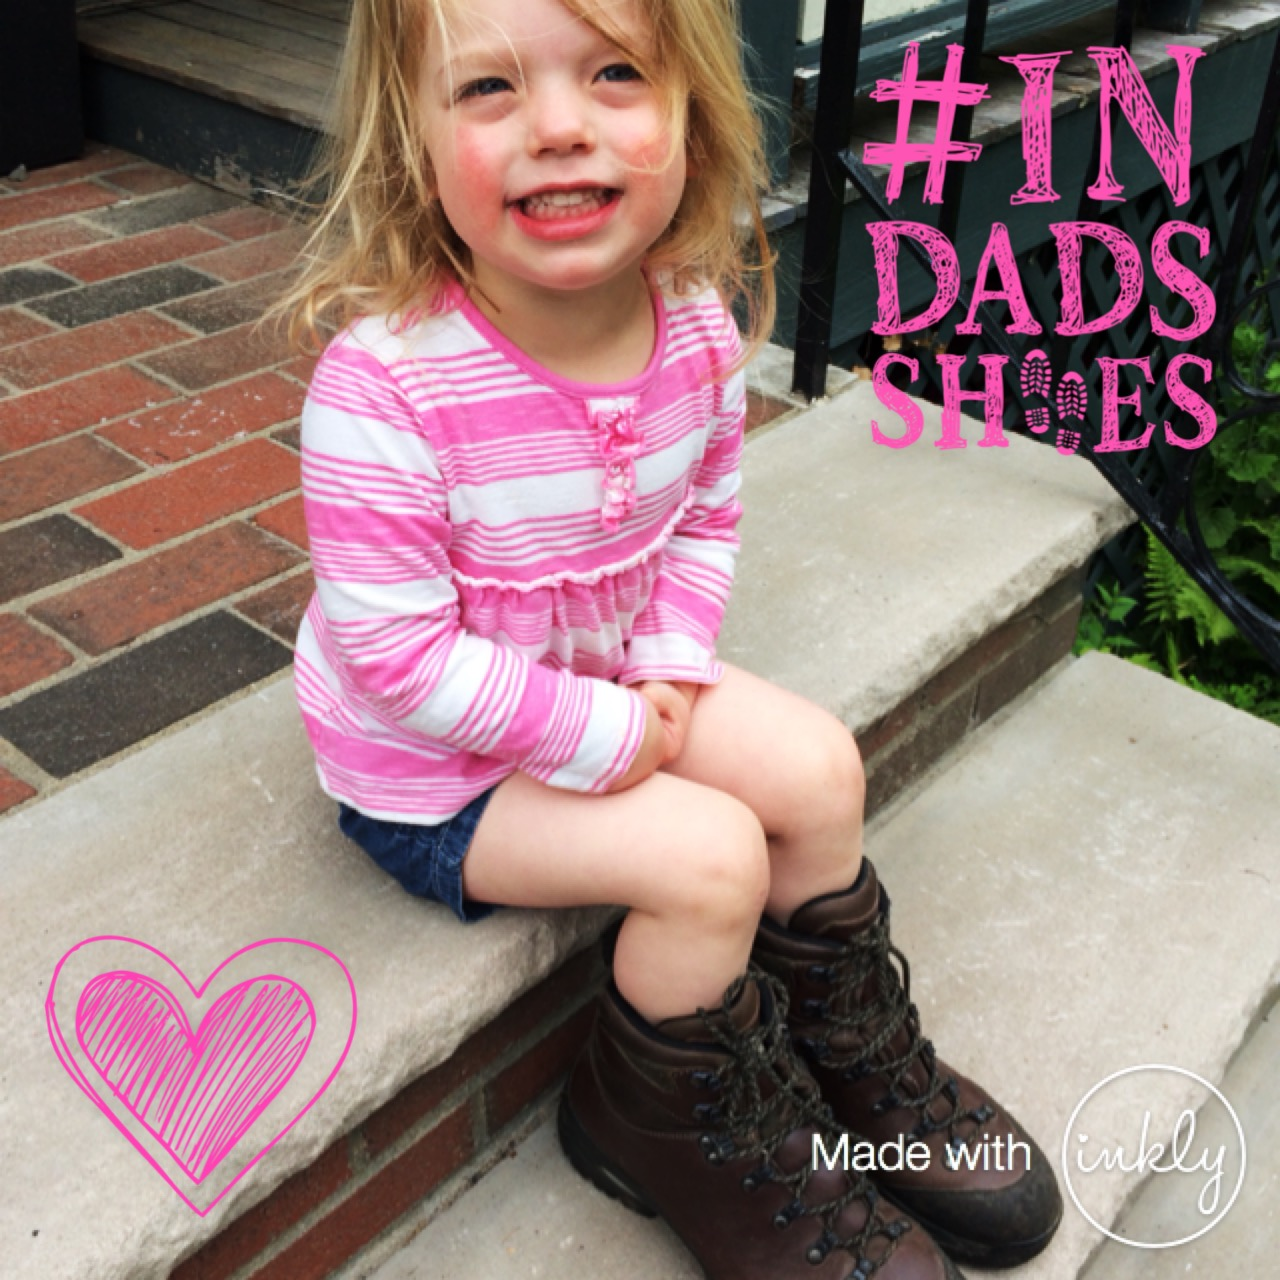 #InDadsShoes Charity Campaign and Competition from Inkly